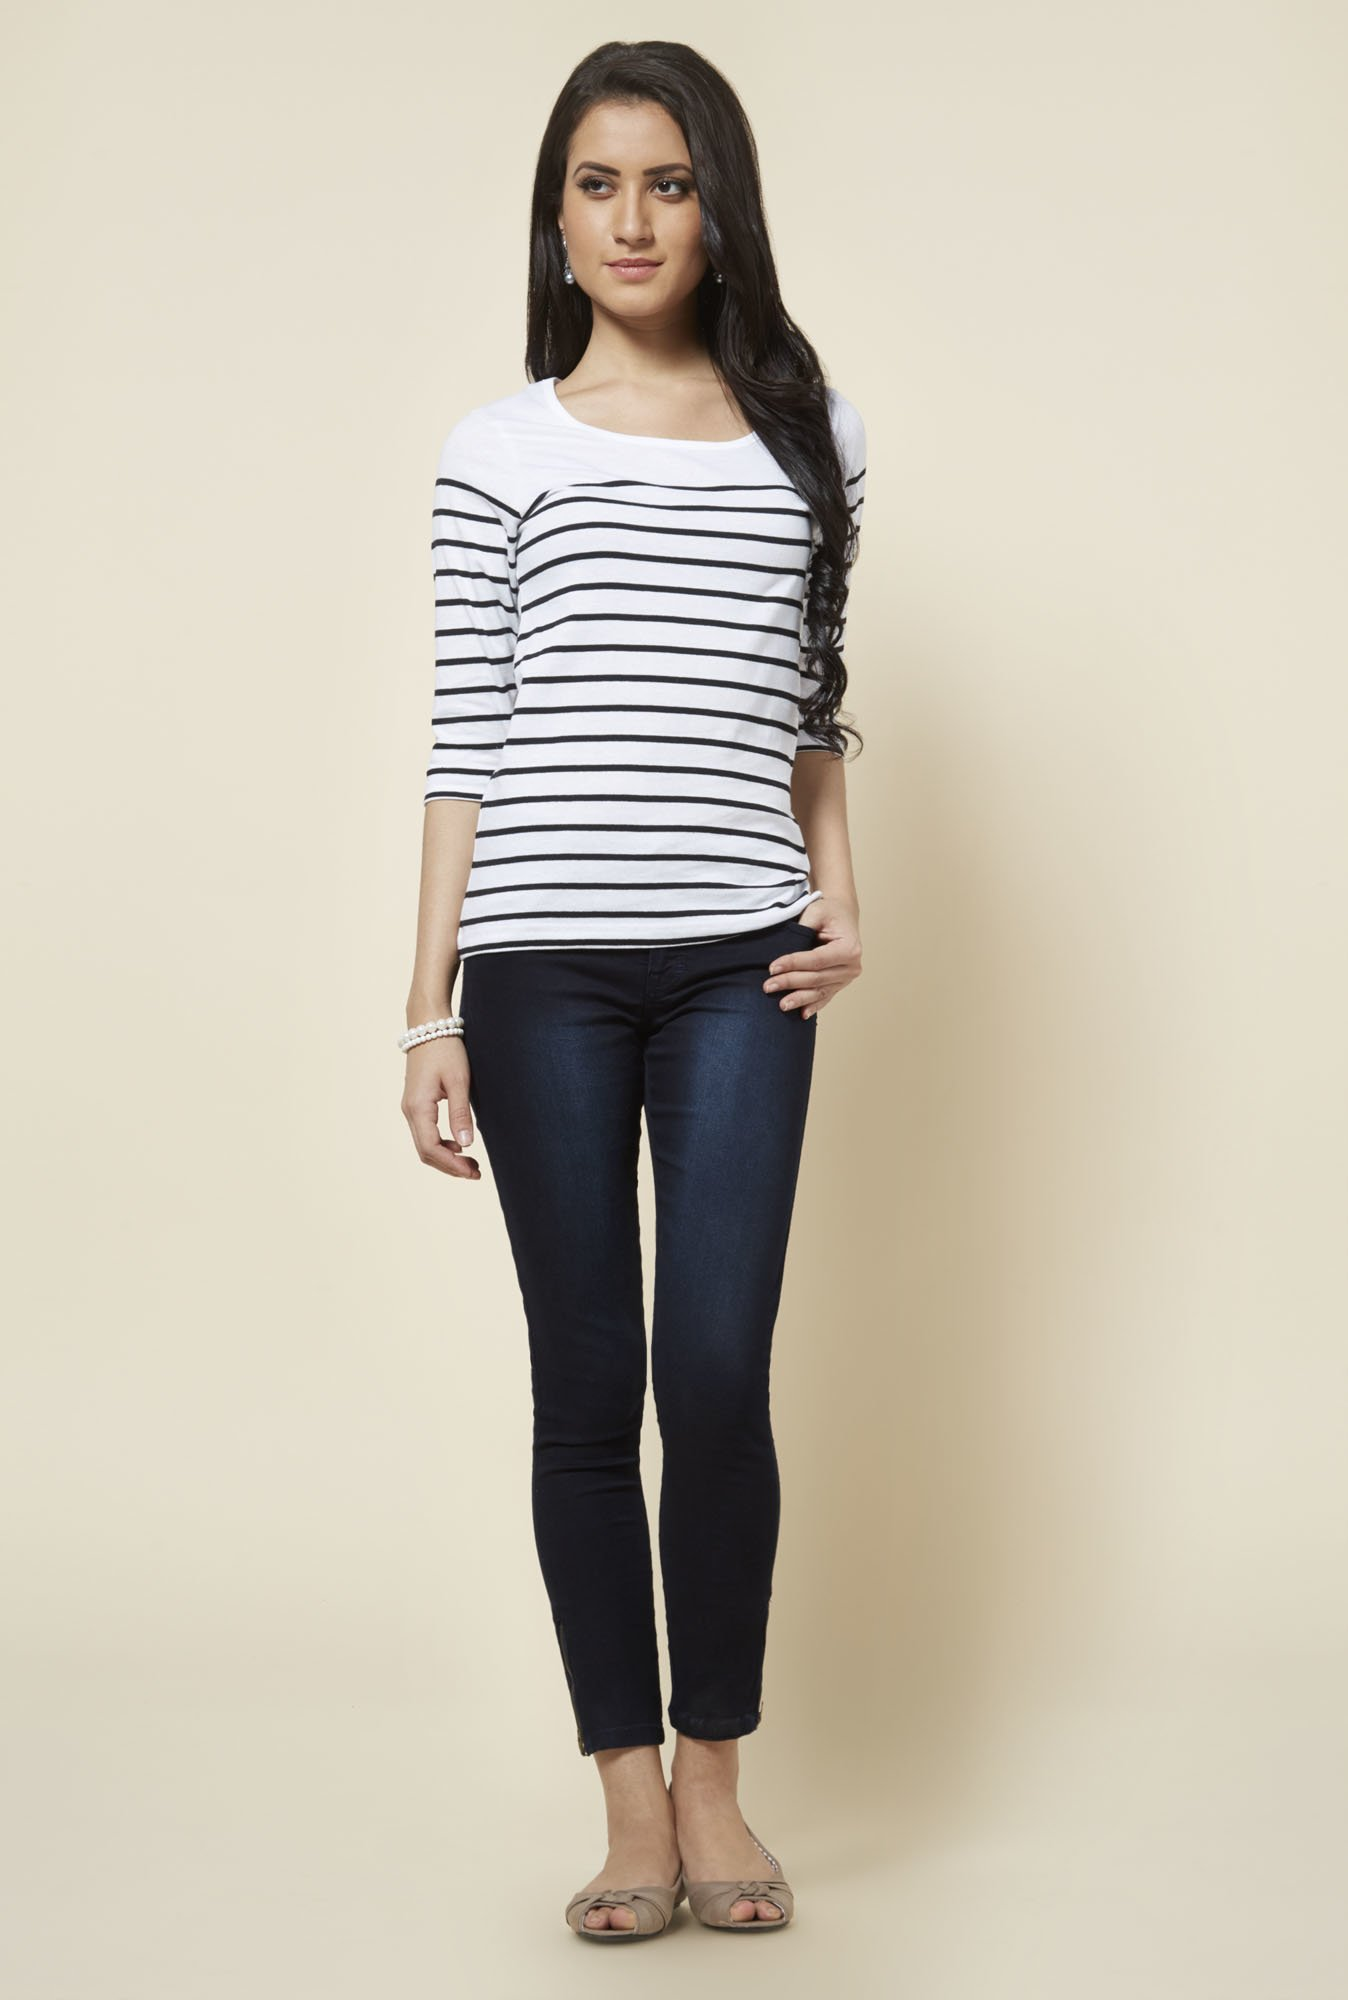 Zudio White Zoe Striped T Shirt